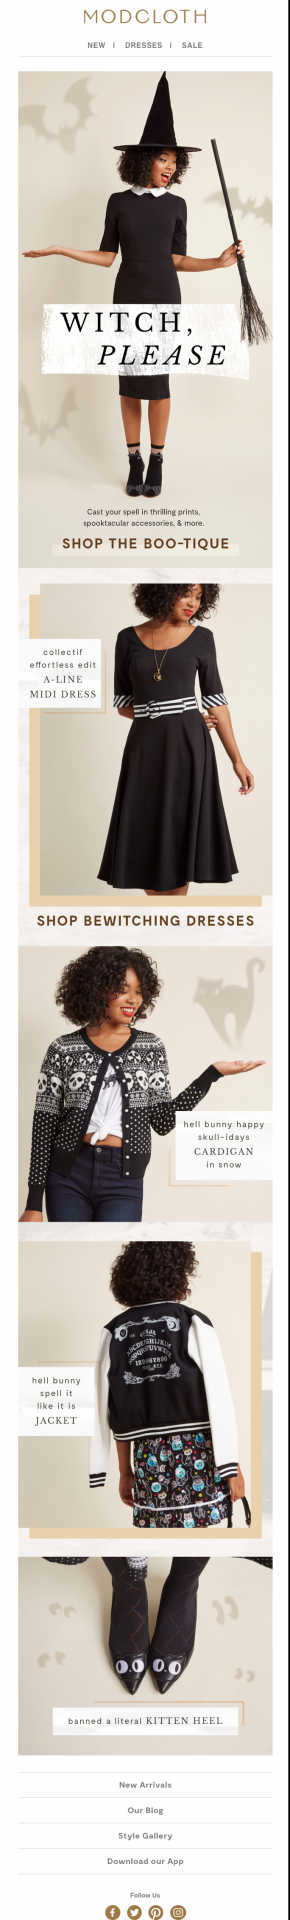 modcloth showcases their fall collection with witch themed outfit ideas